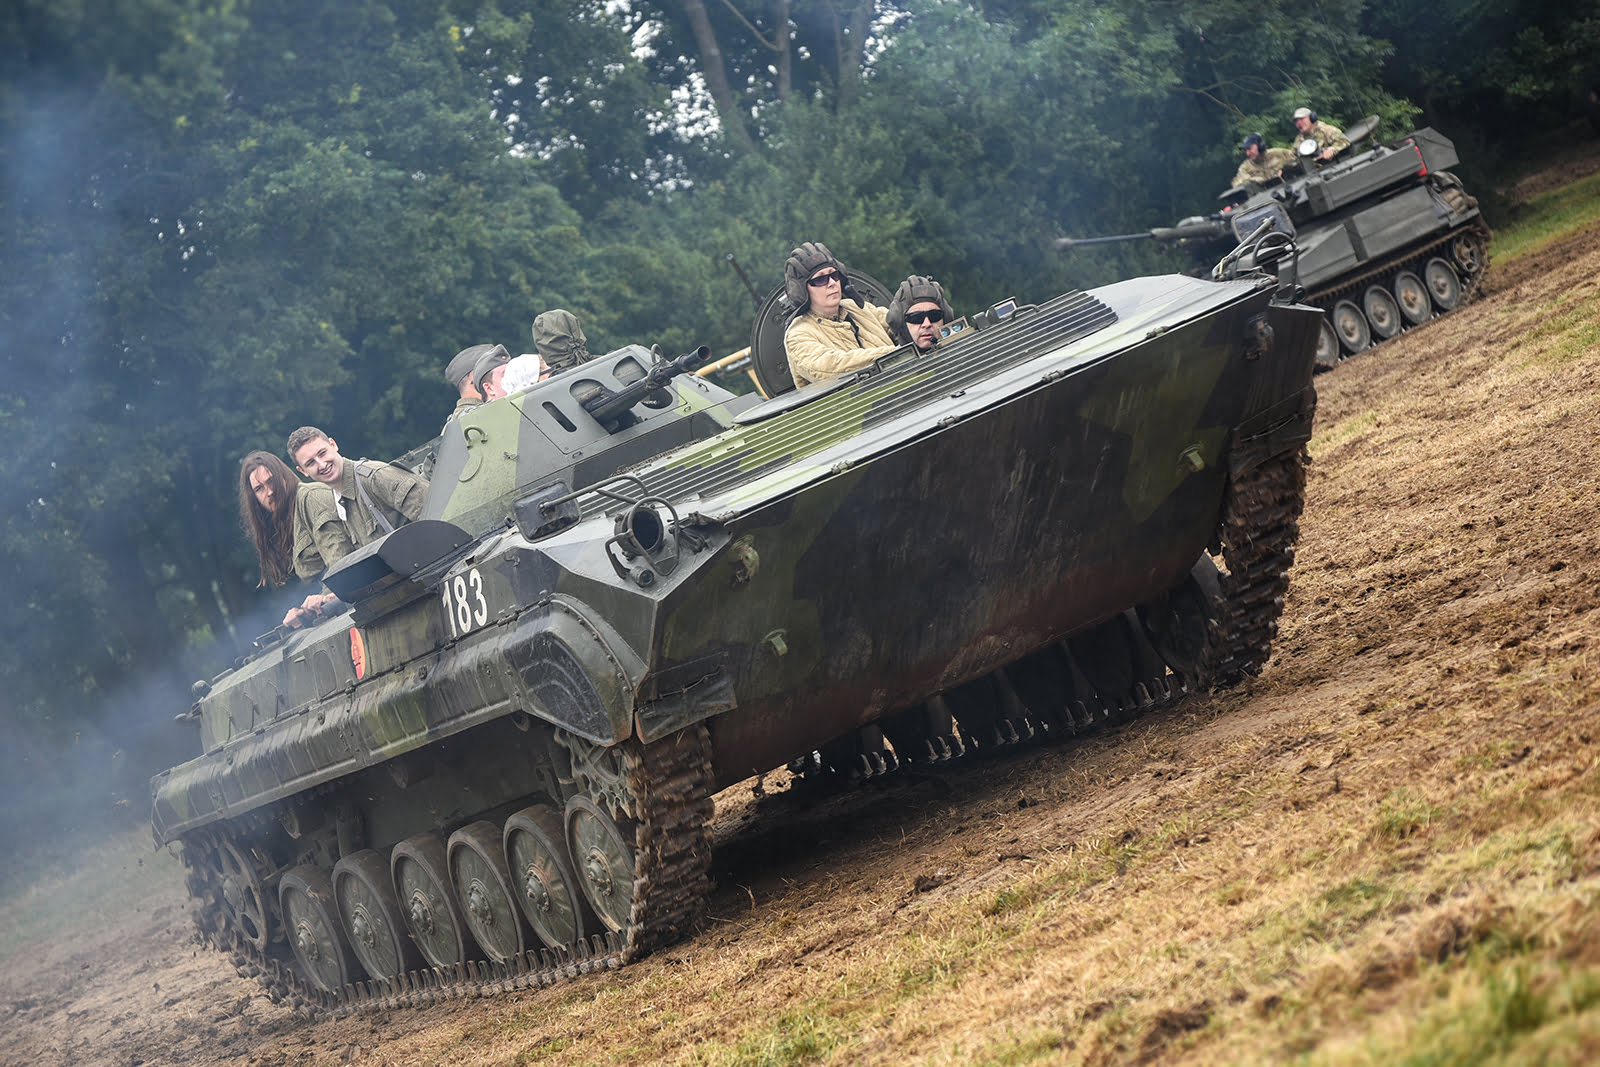 Tracked vehicle at Capel Military Show